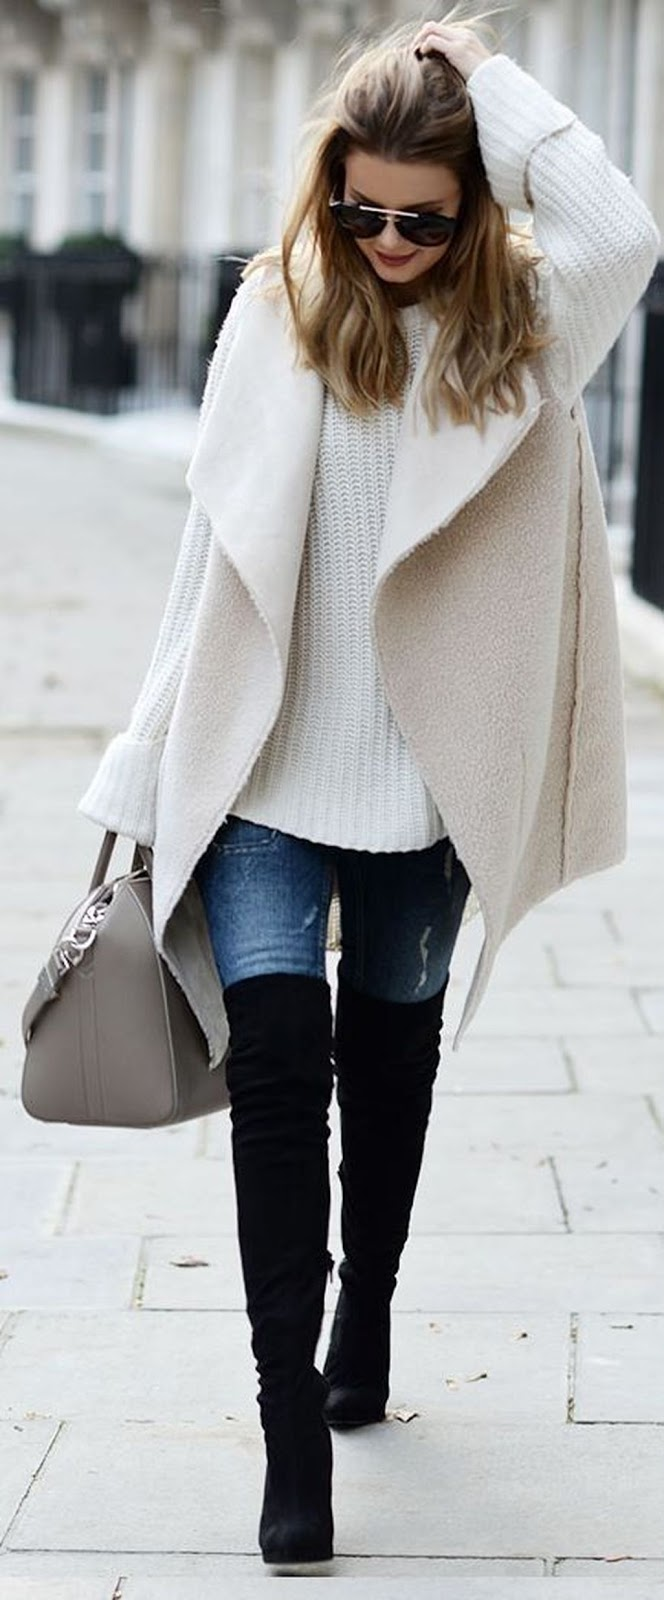 layered outfit to try this winter